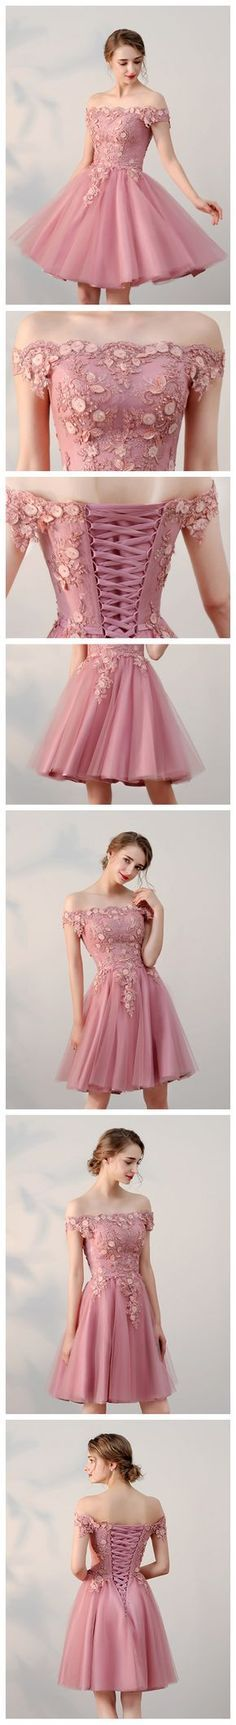 CHIC A-LINE OFF-THE-SHOULDER TULLE PINK CHARMING SHORT PROM DRESS HOMECOMING DRESS AM229